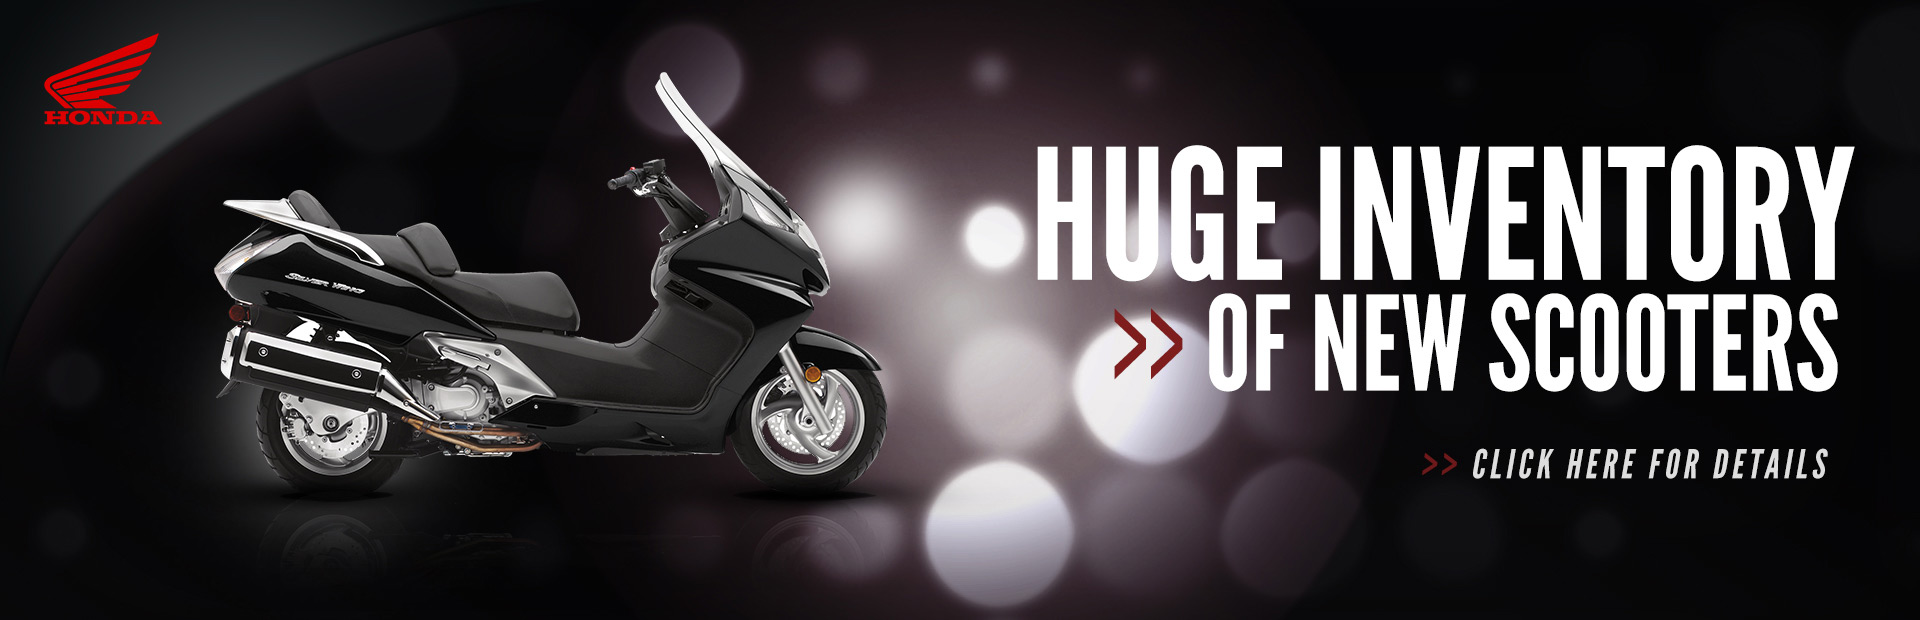 We have a huge inventory of new Honda scooters! Click here to see for yourself.